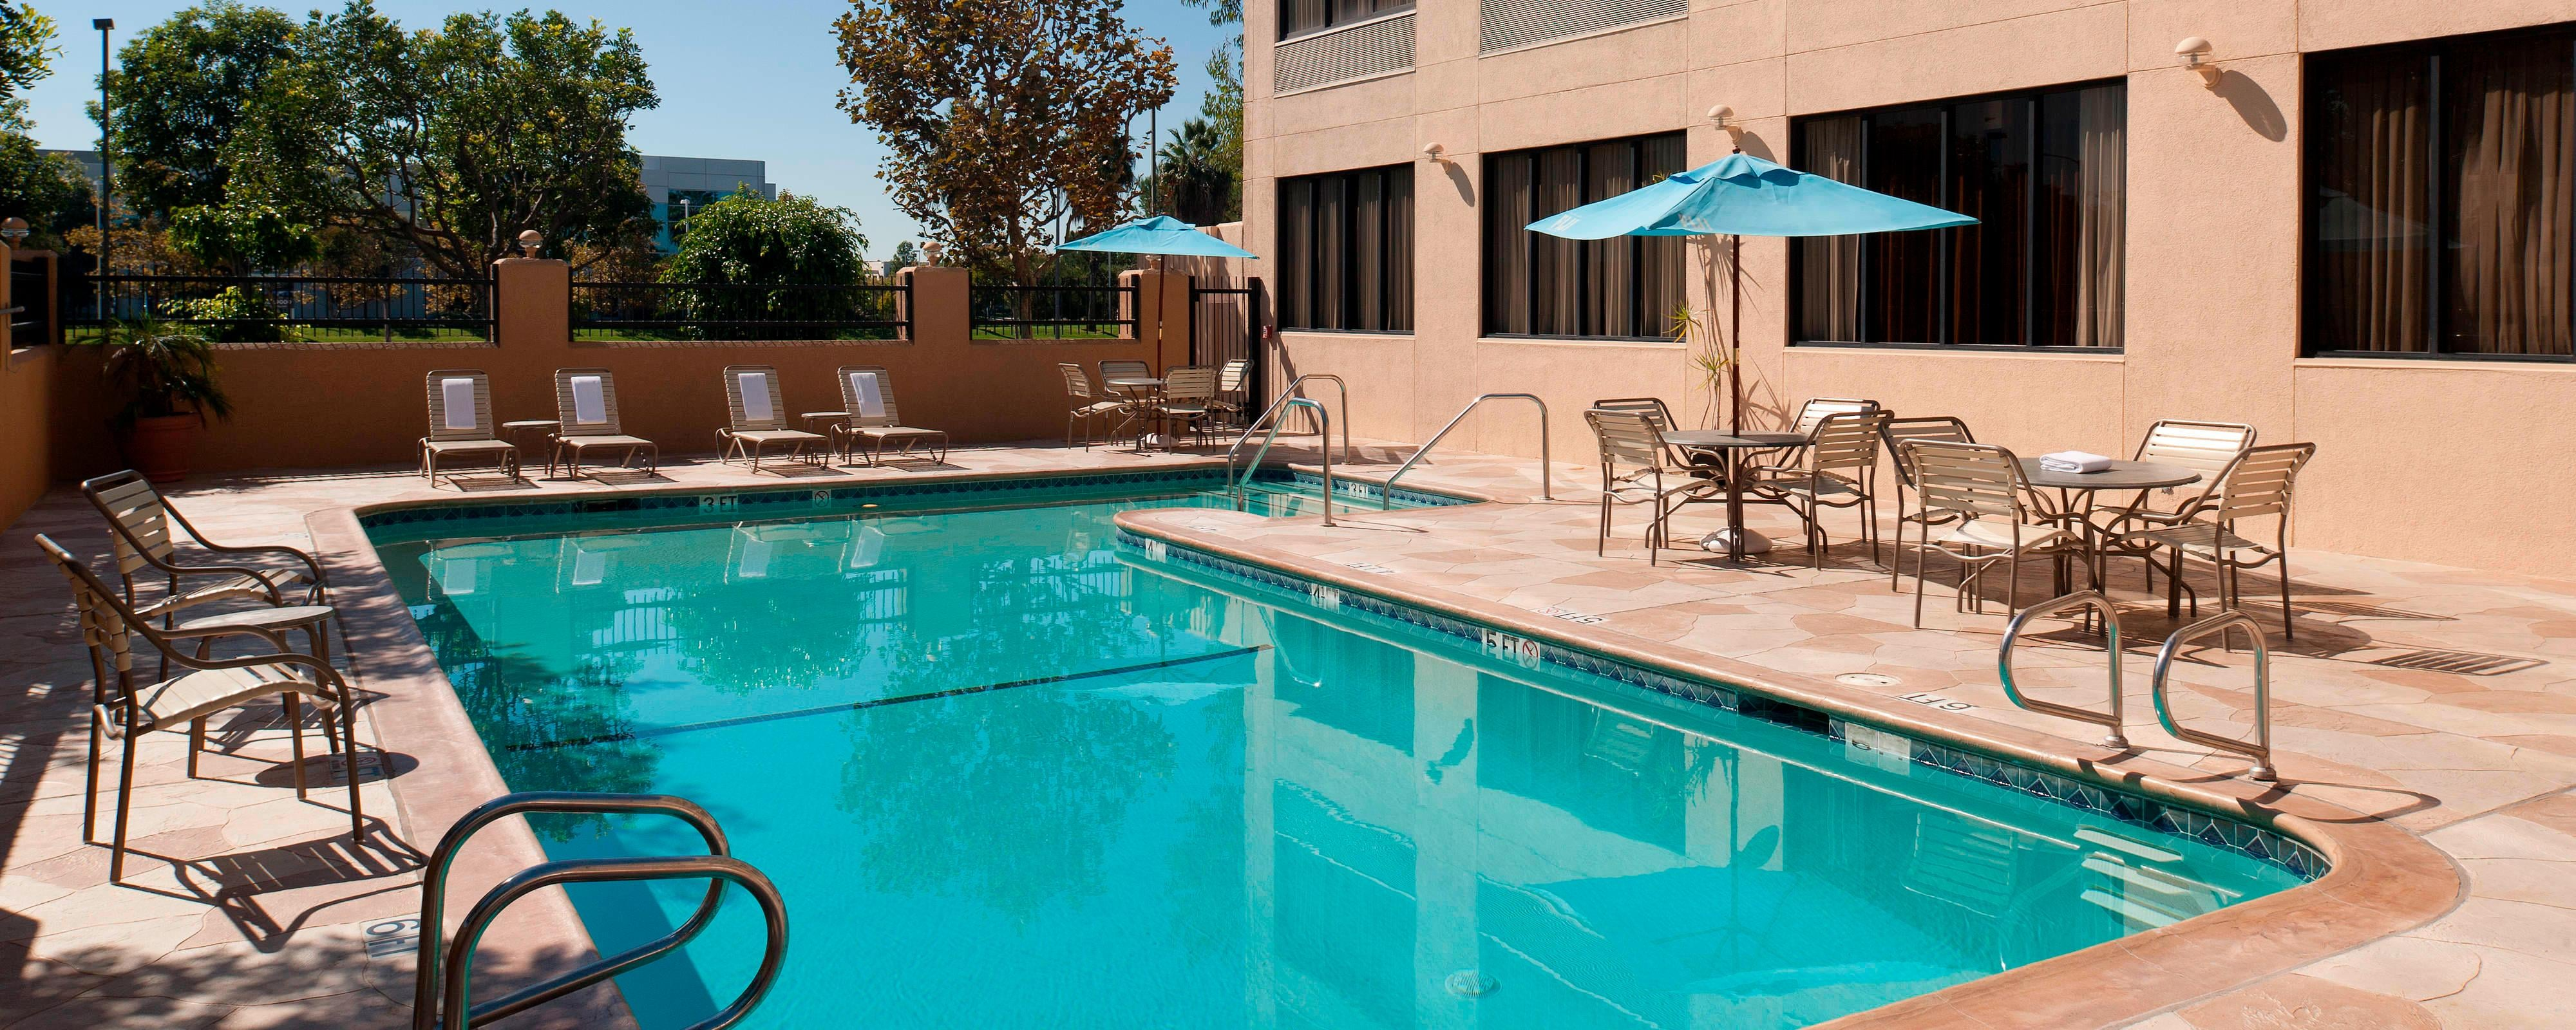 Pool - Hotels in Cypress, CA